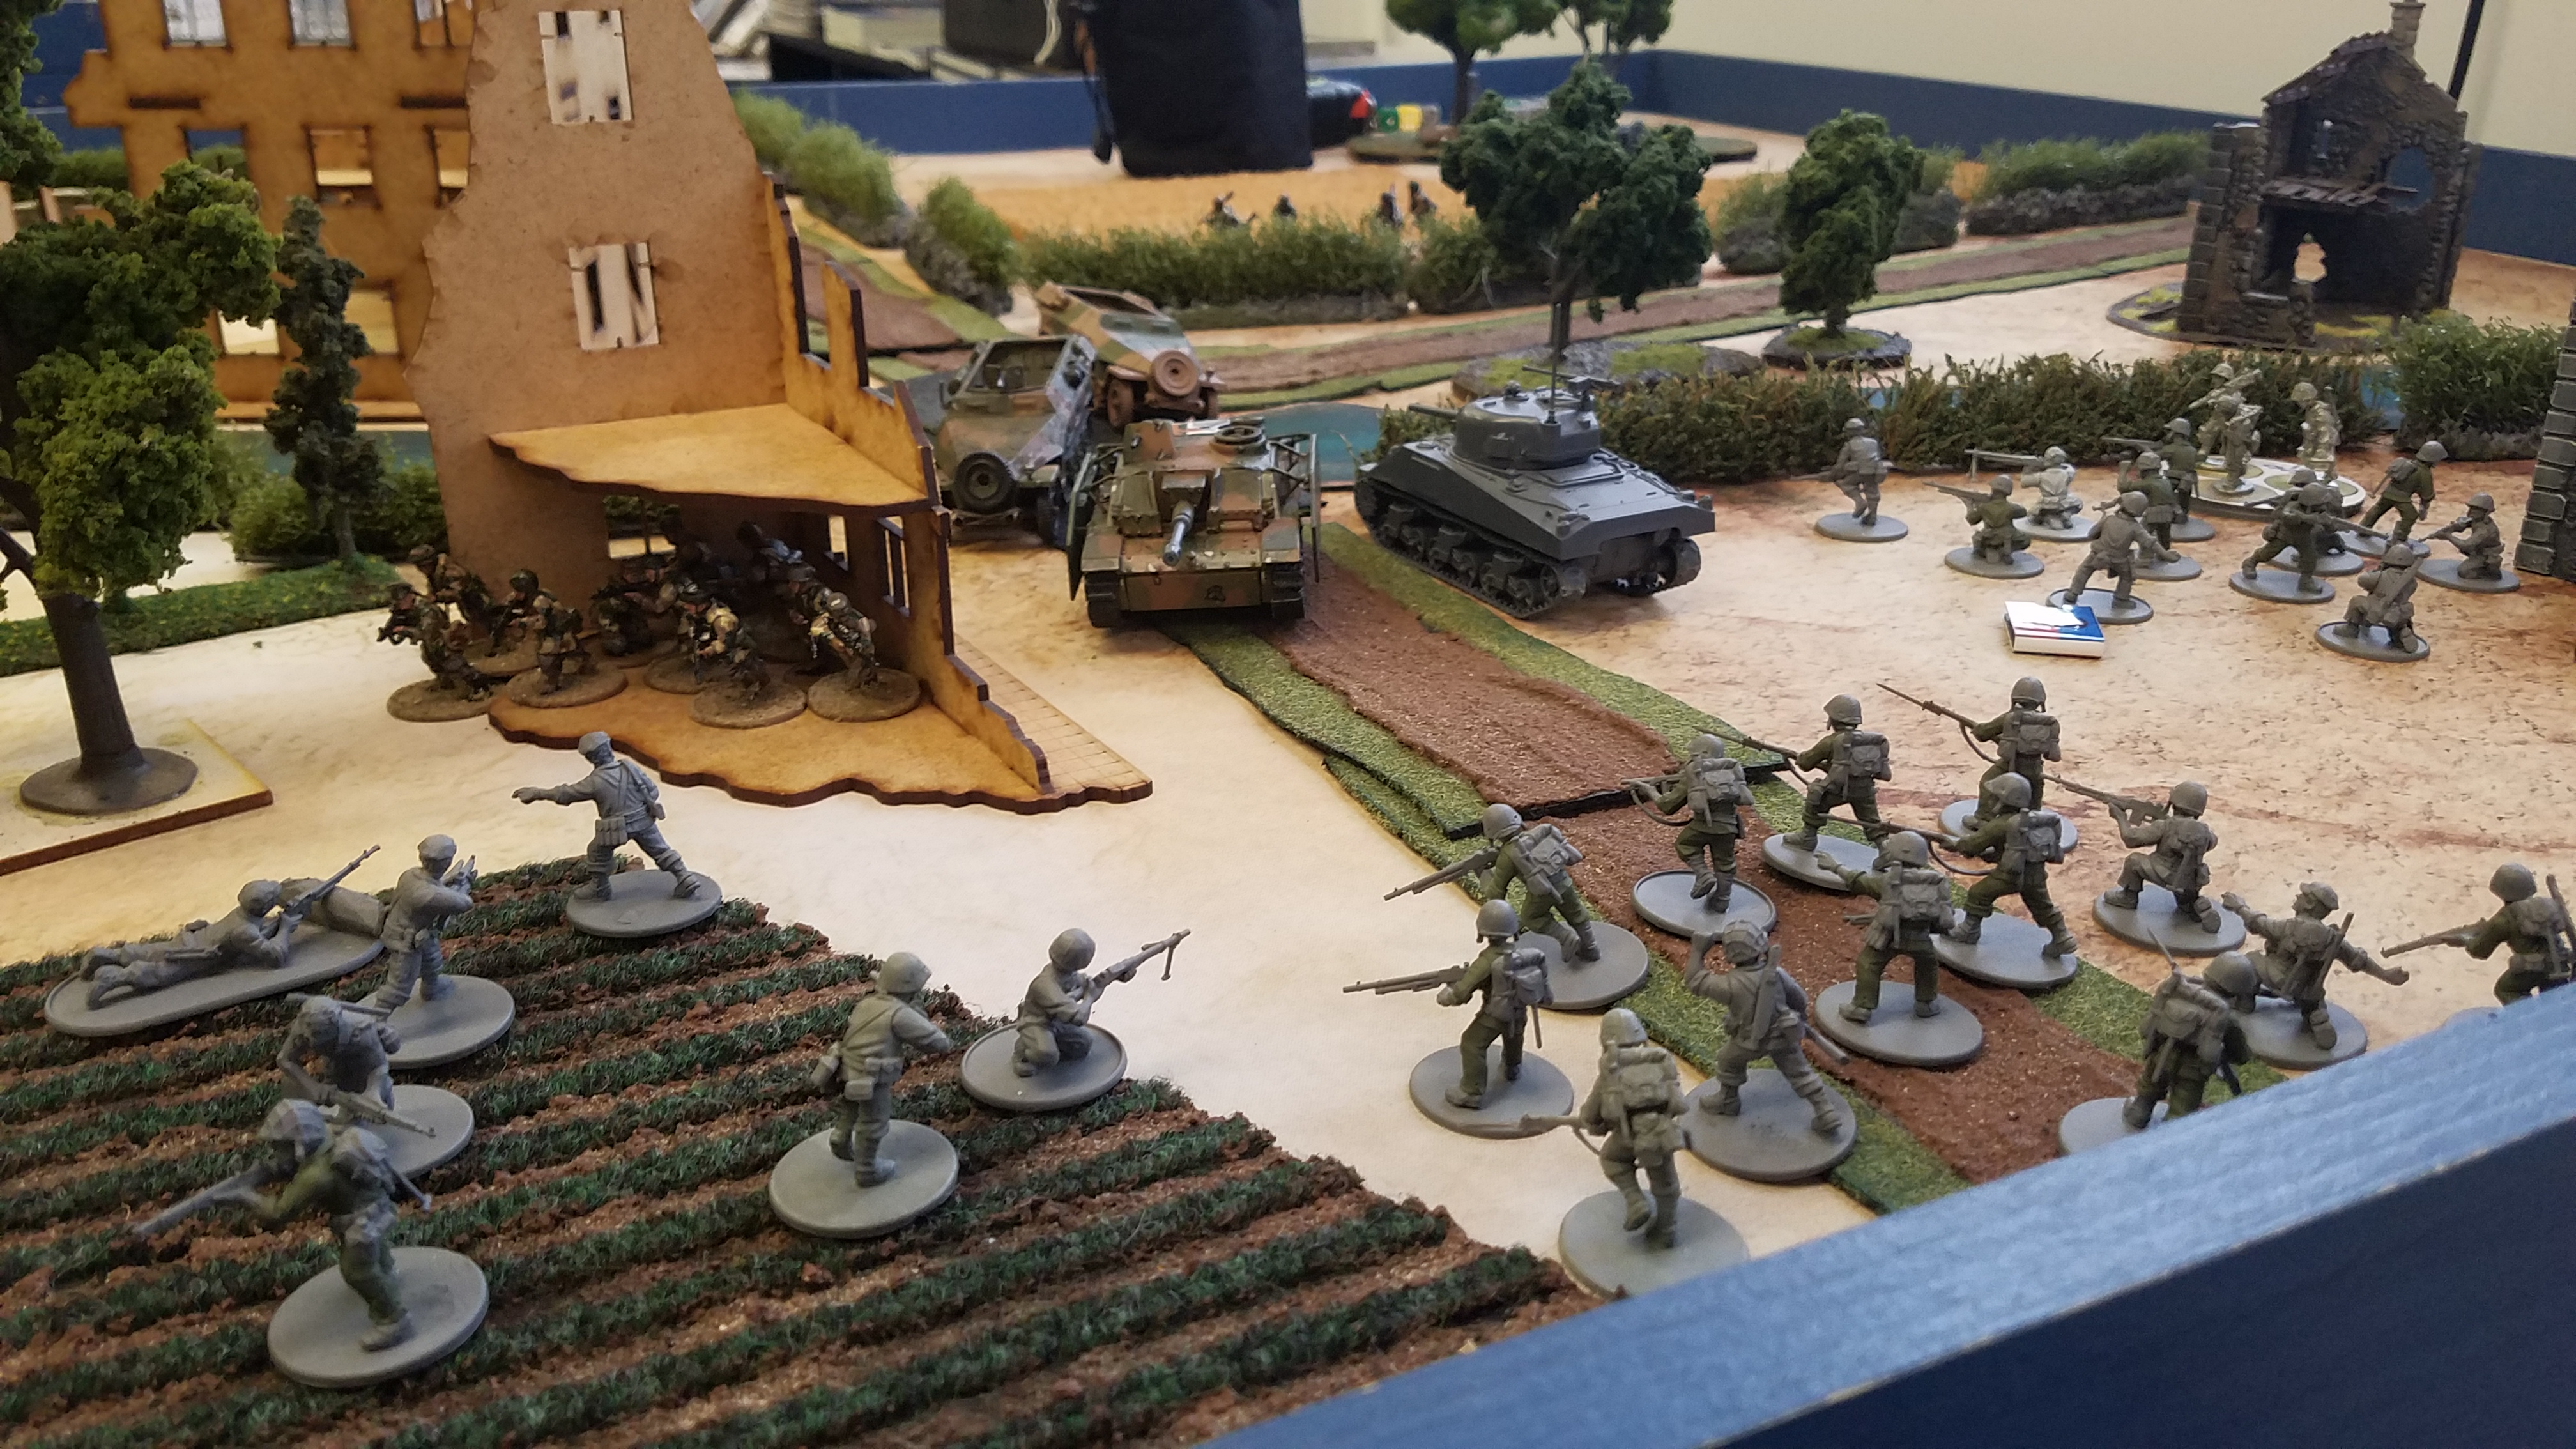 Germans versus Task Force Union in a fierce infantry engagement